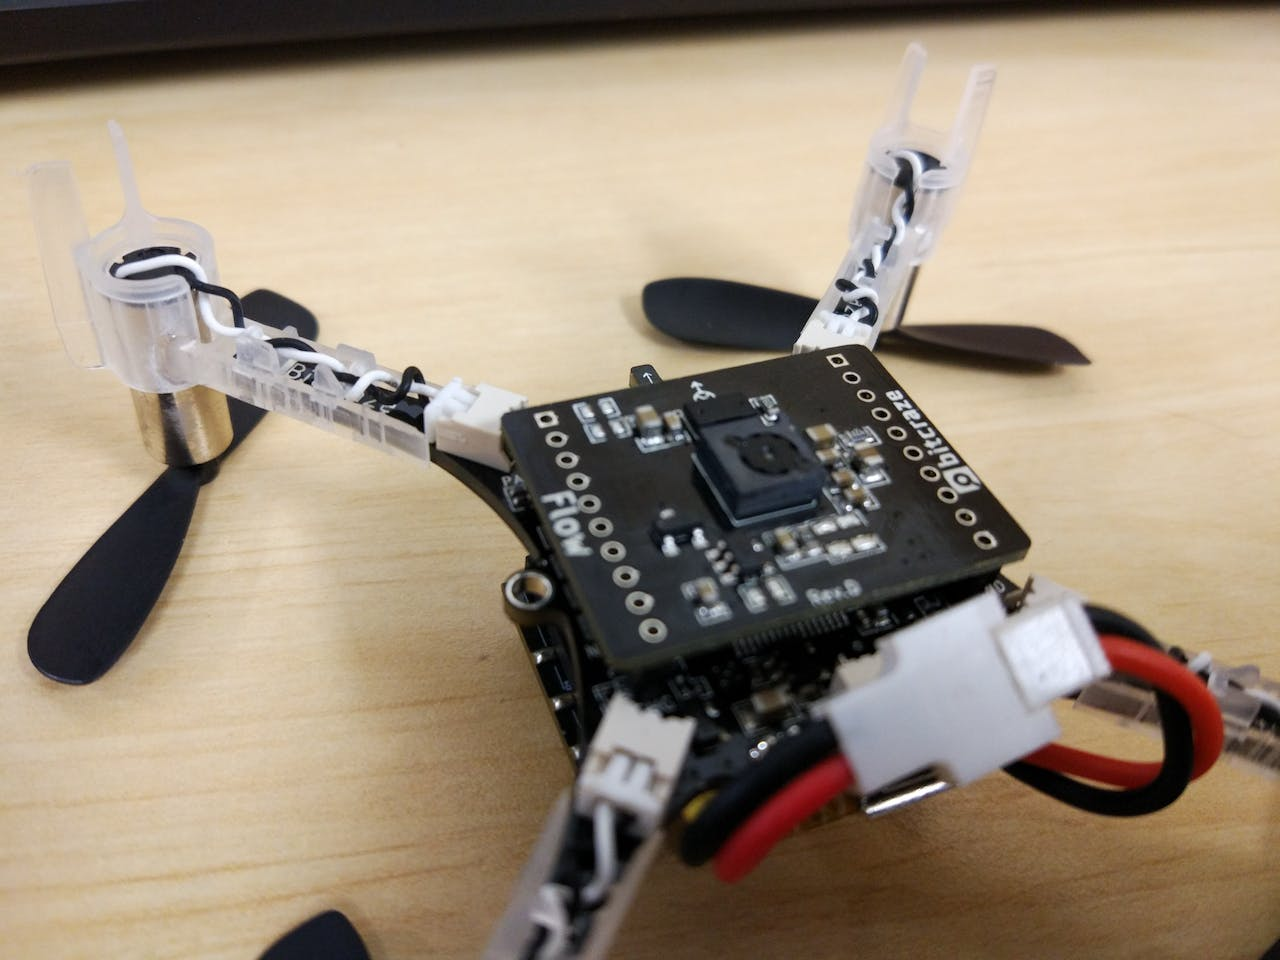 Beginners Guide To Autonomous Quadcopters Of Connecting Your Rc Plane Electronic Parts